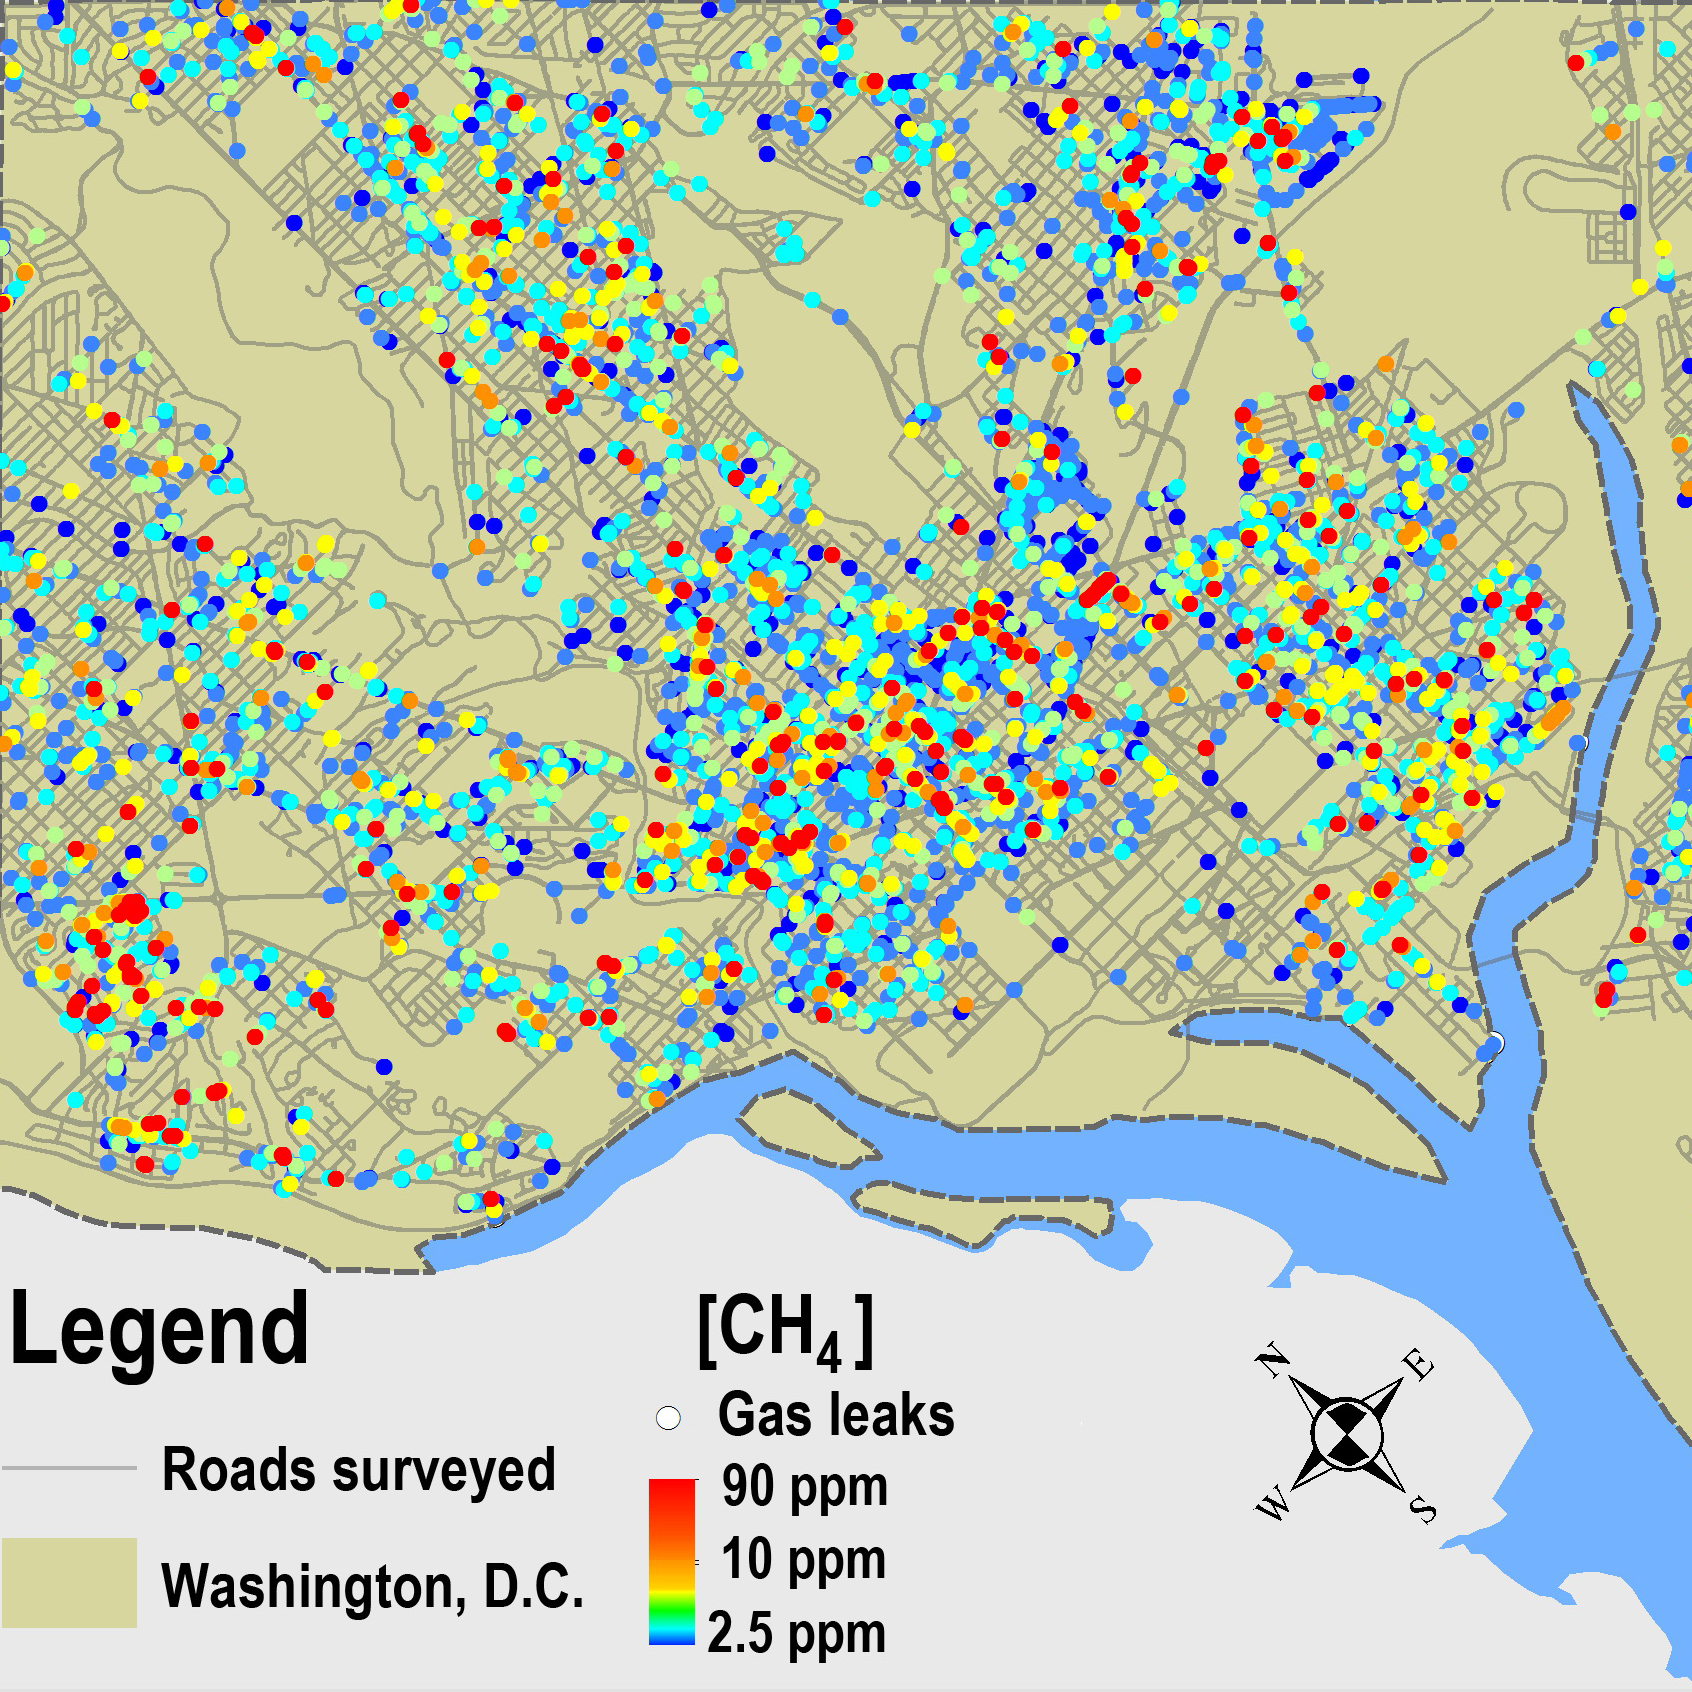 Methane leaks mapped across the 1,500 miles of roads of Washington, D.C.